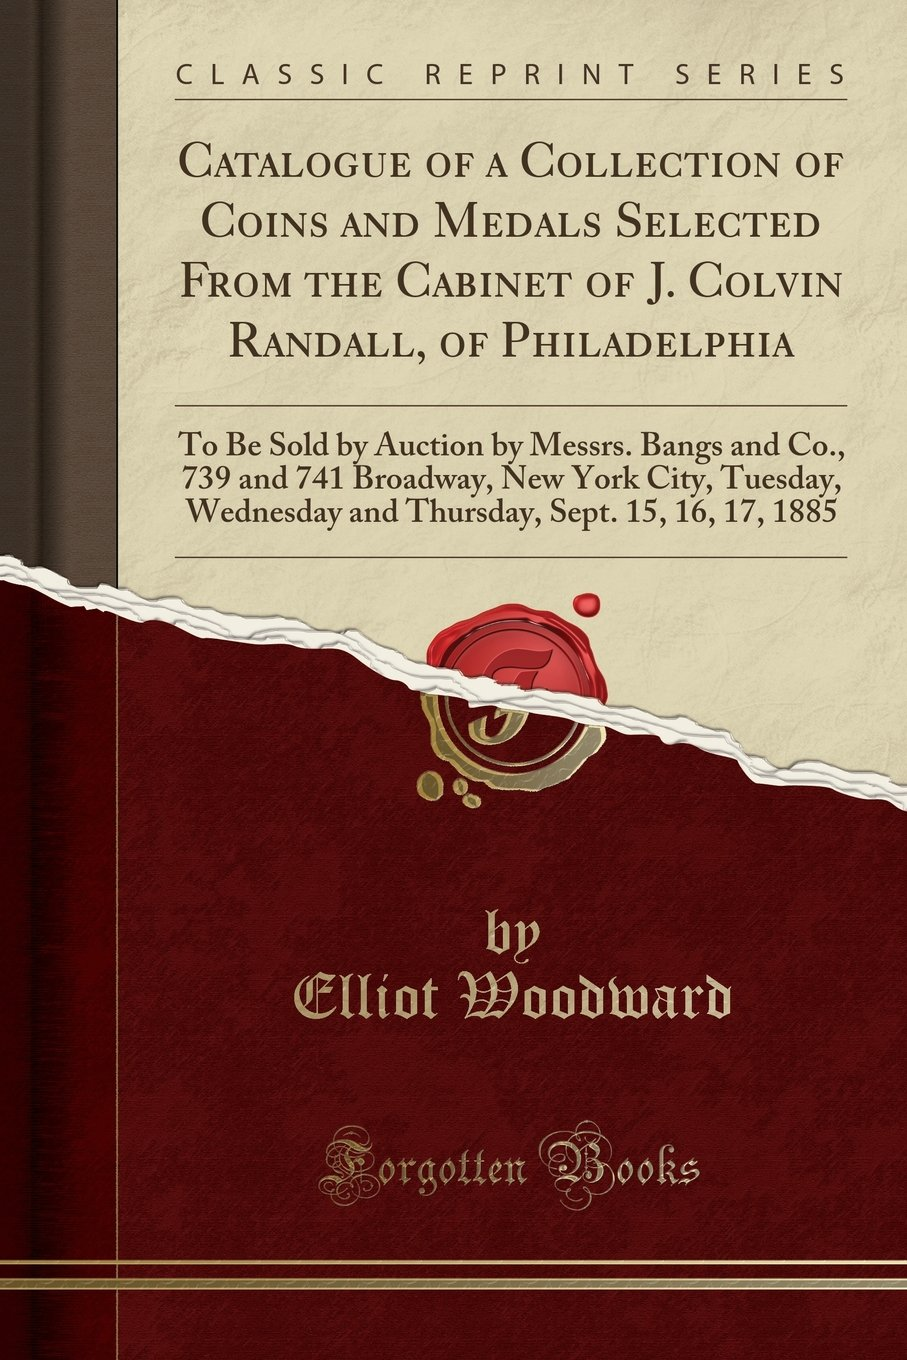 Download Catalogue of a Collection of Coins and Medals Selected From the Cabinet of J. Colvin Randall, of Philadelphia: To Be Sold by Auction by Messrs. Bangs ... and Thursday, Sept. 15, 16, 17, 1885 ebook